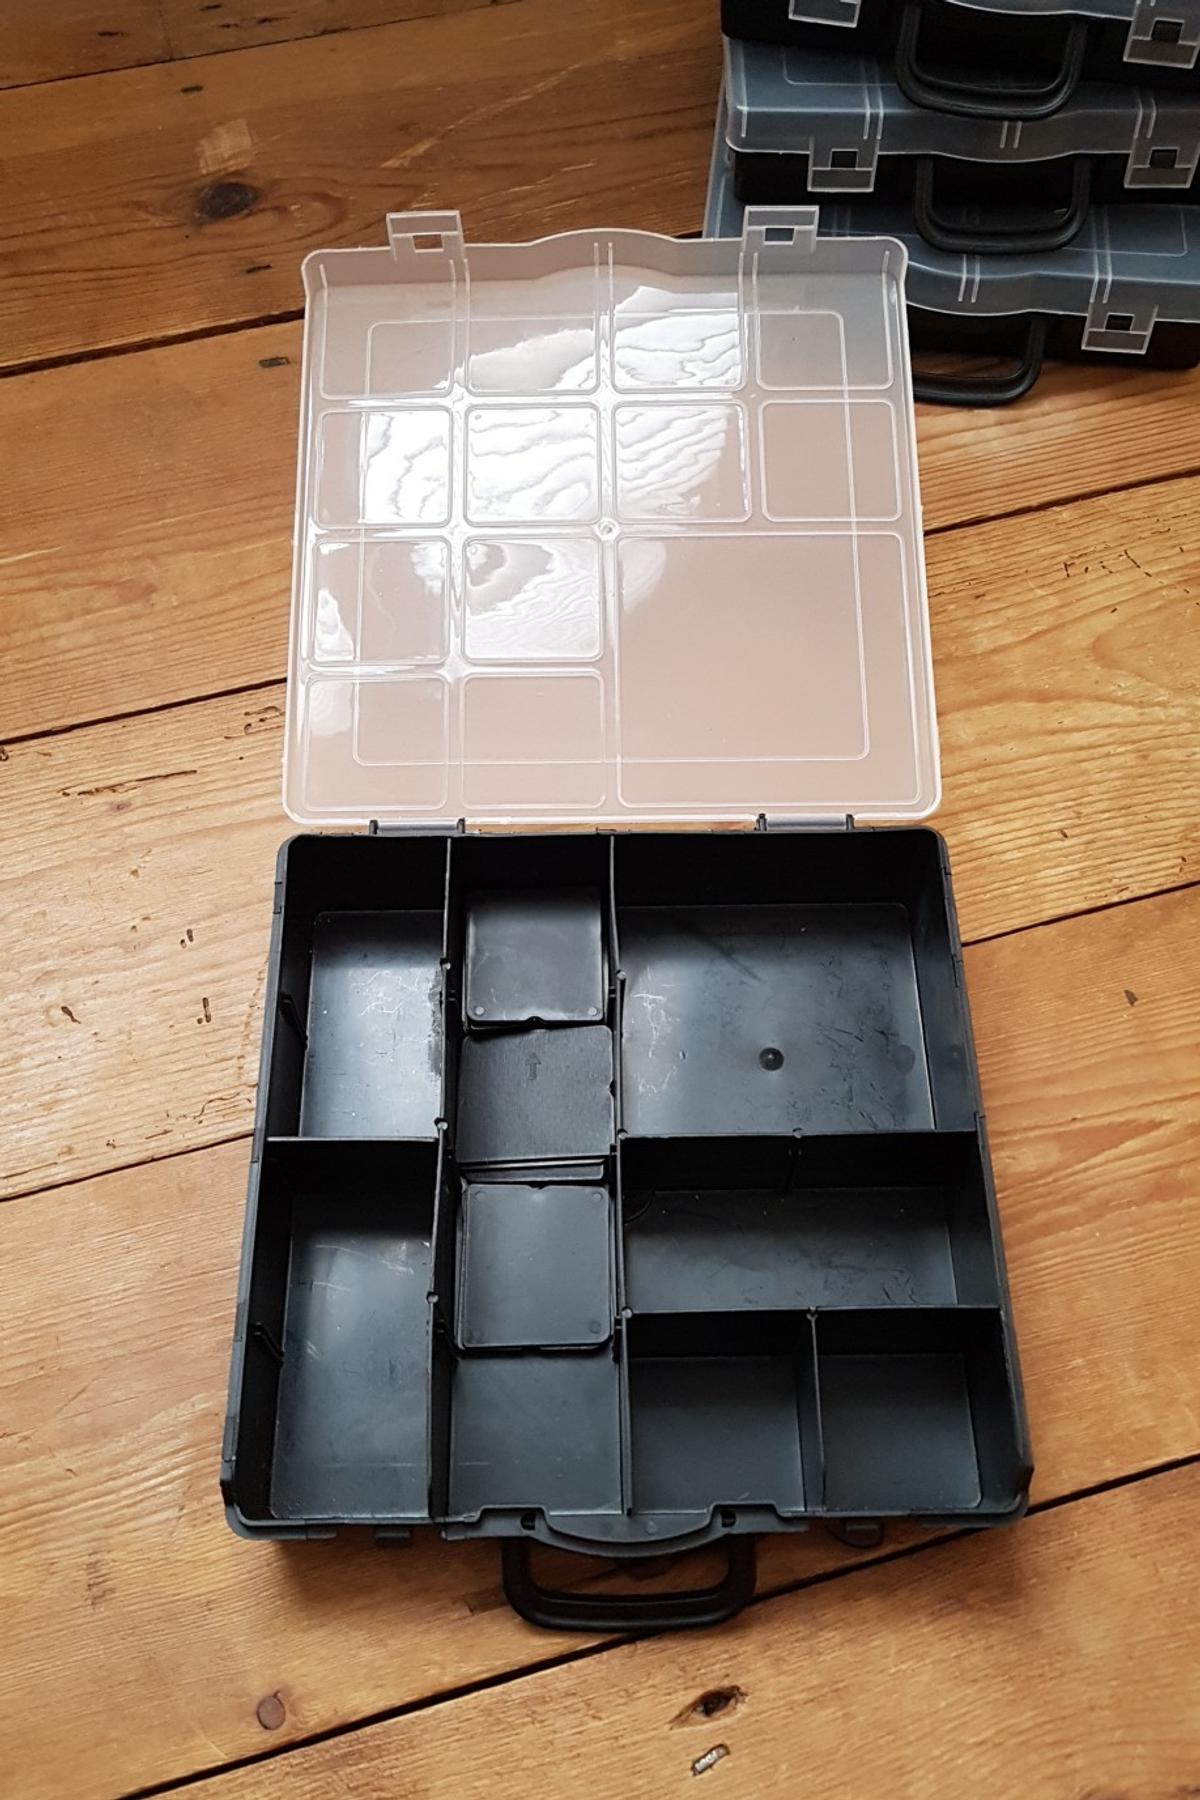 4 Hobby Craft Storage Boxes In Ws11 Cannock Chase For 5 00 For Sale